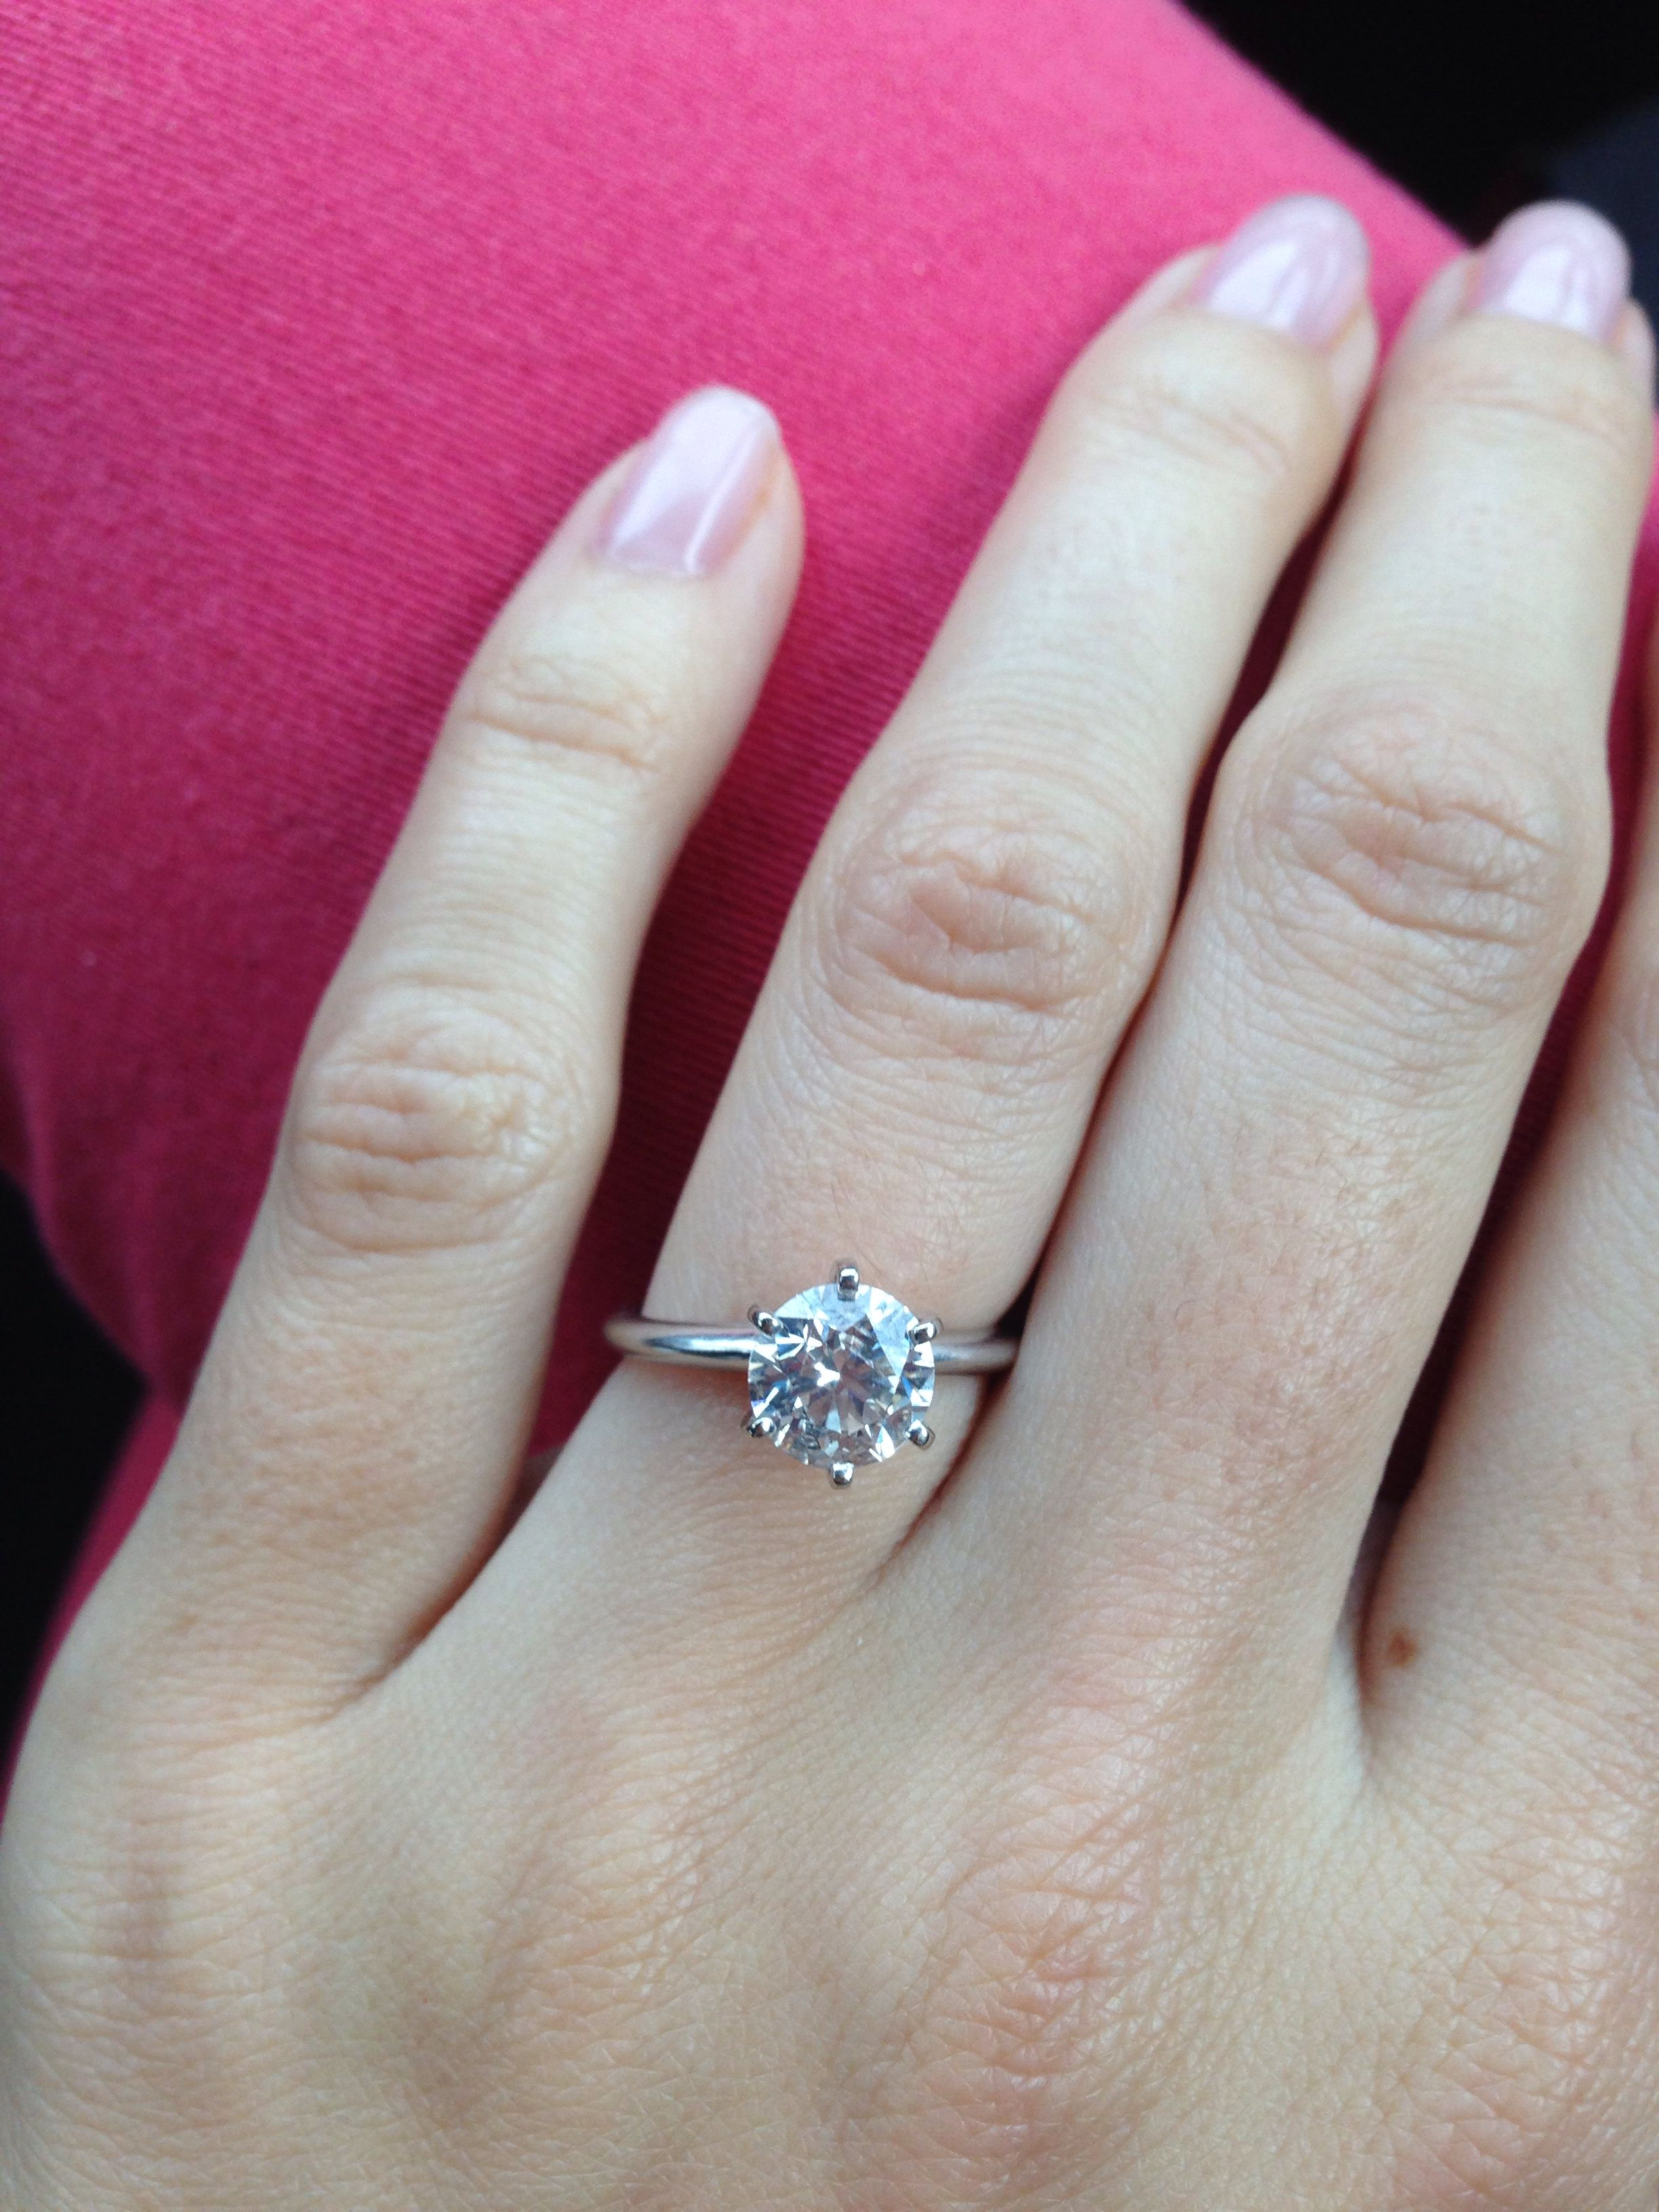 1 57 Ct Tiffany Style Solitaire Engagement Ring Solitaire Engagement Ring Engagement Rings Solitaire Engagement